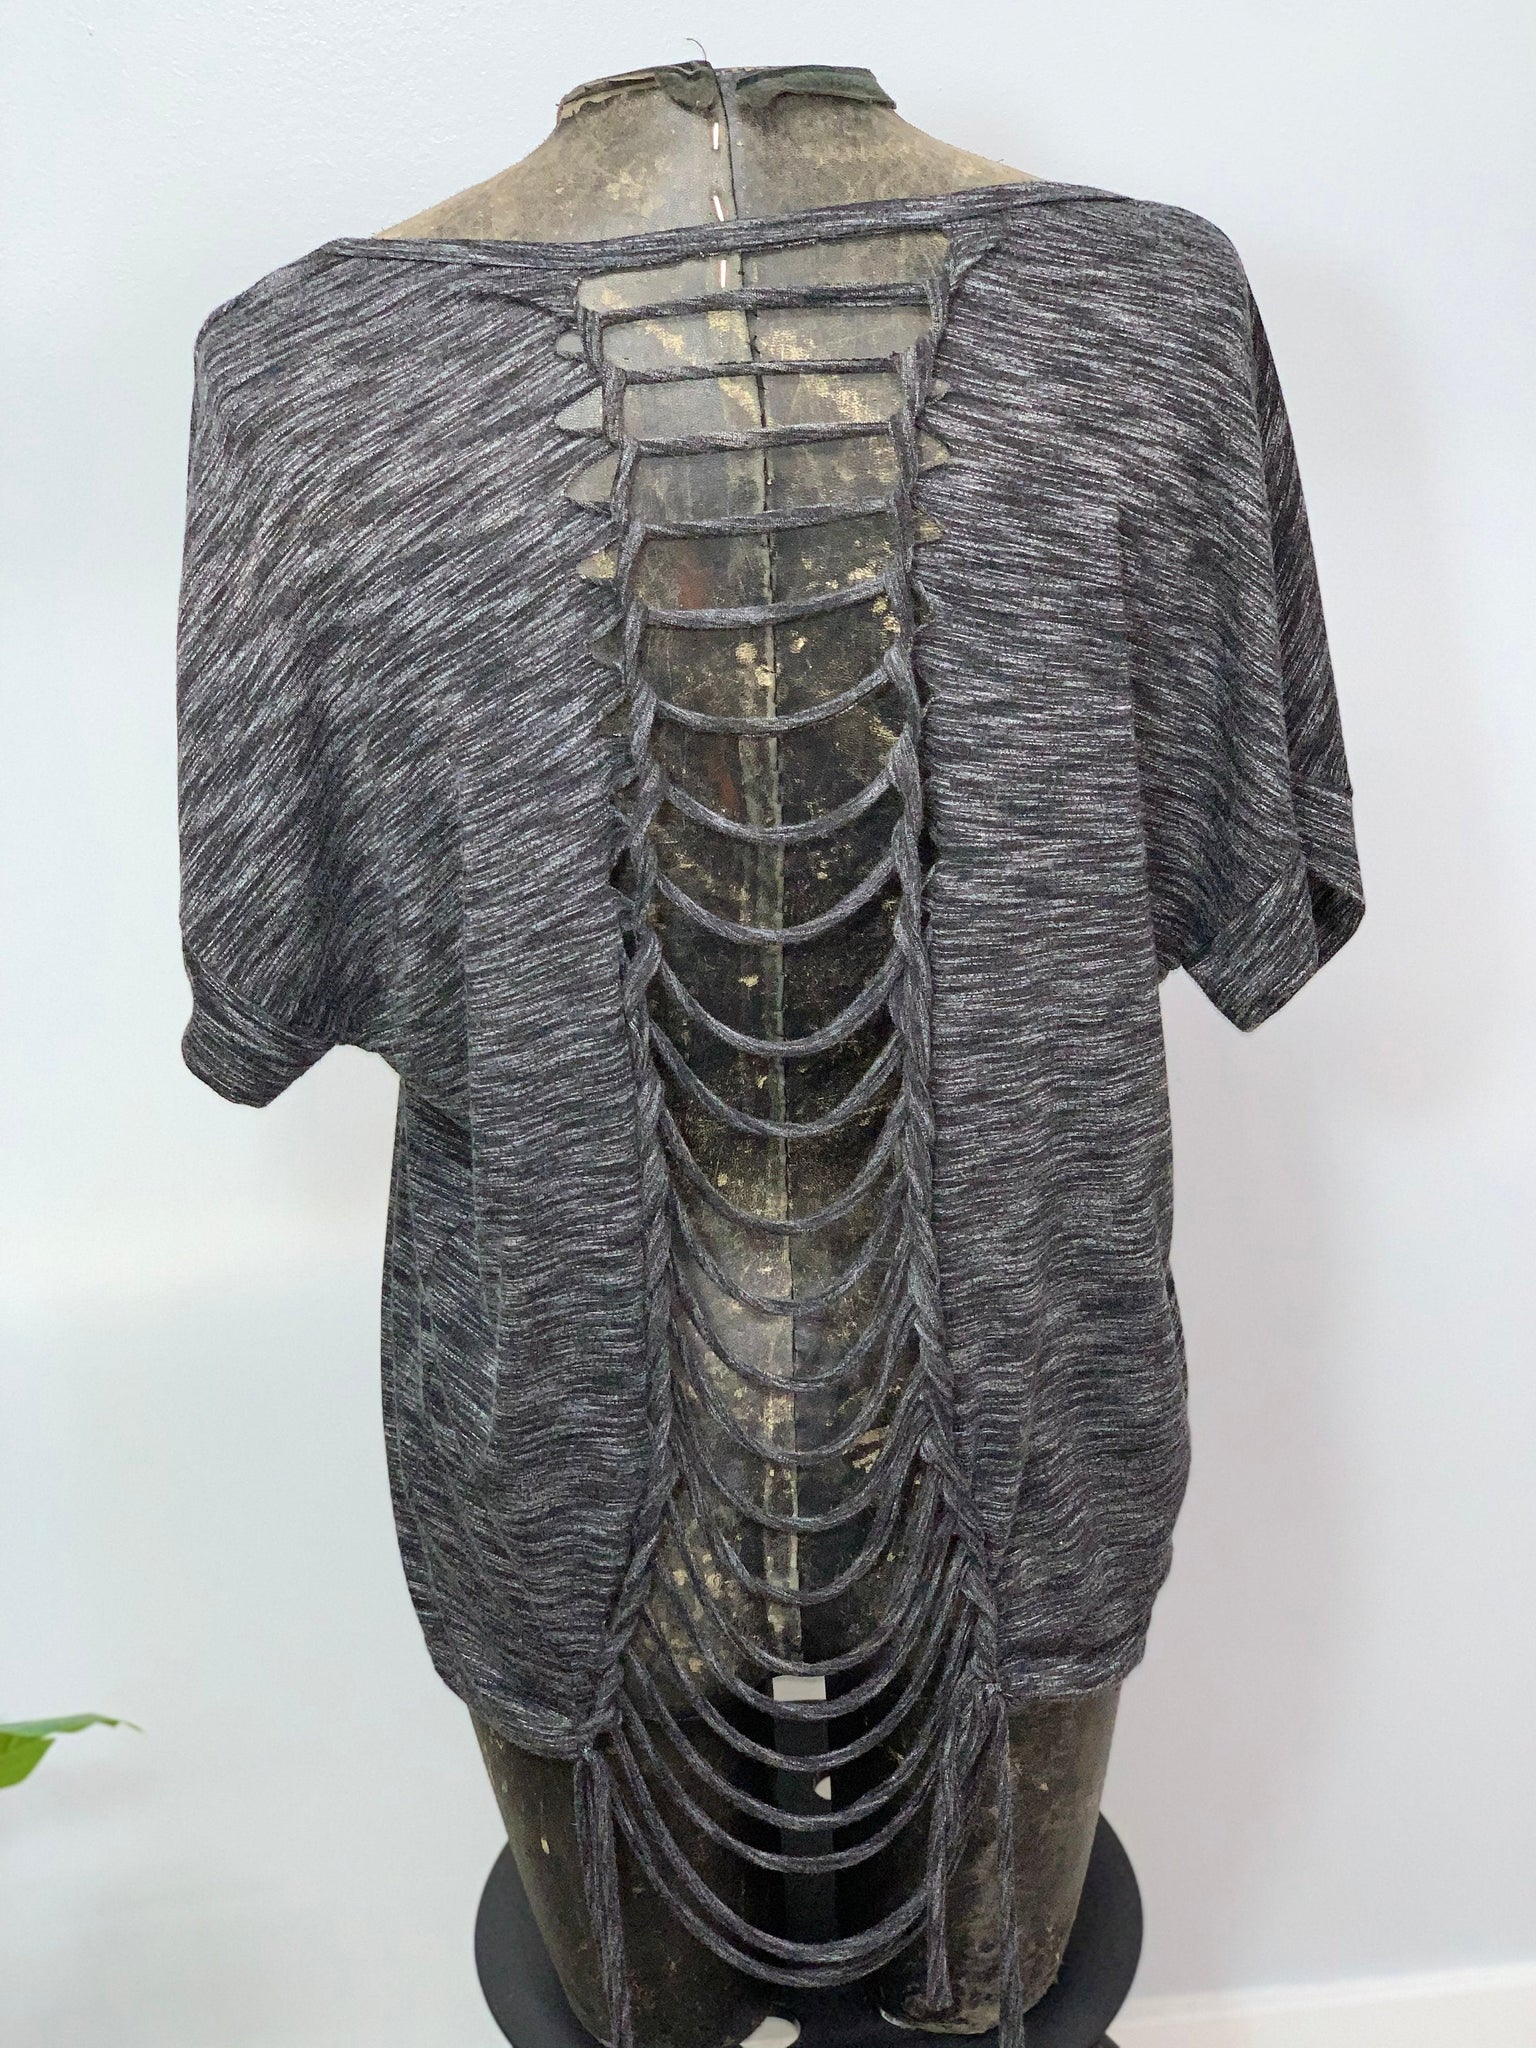 Heather Grey Cut Up T-shirt by Sniptease Braided Shirt Soft and Classy